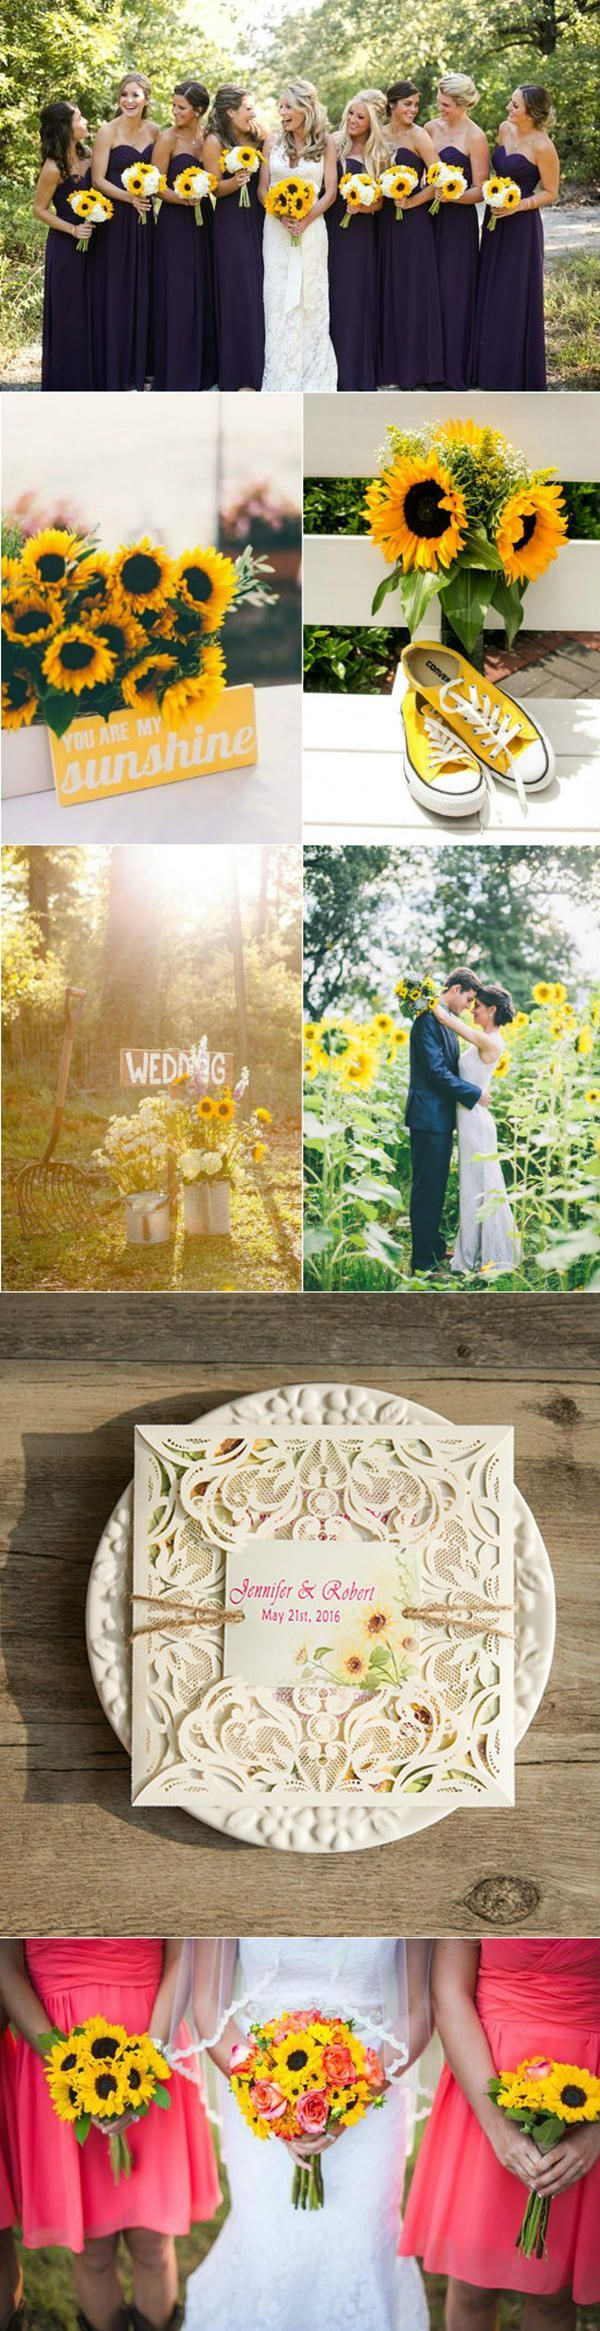 Top 5 Wedding Invitations For 2016 Spring Rustic